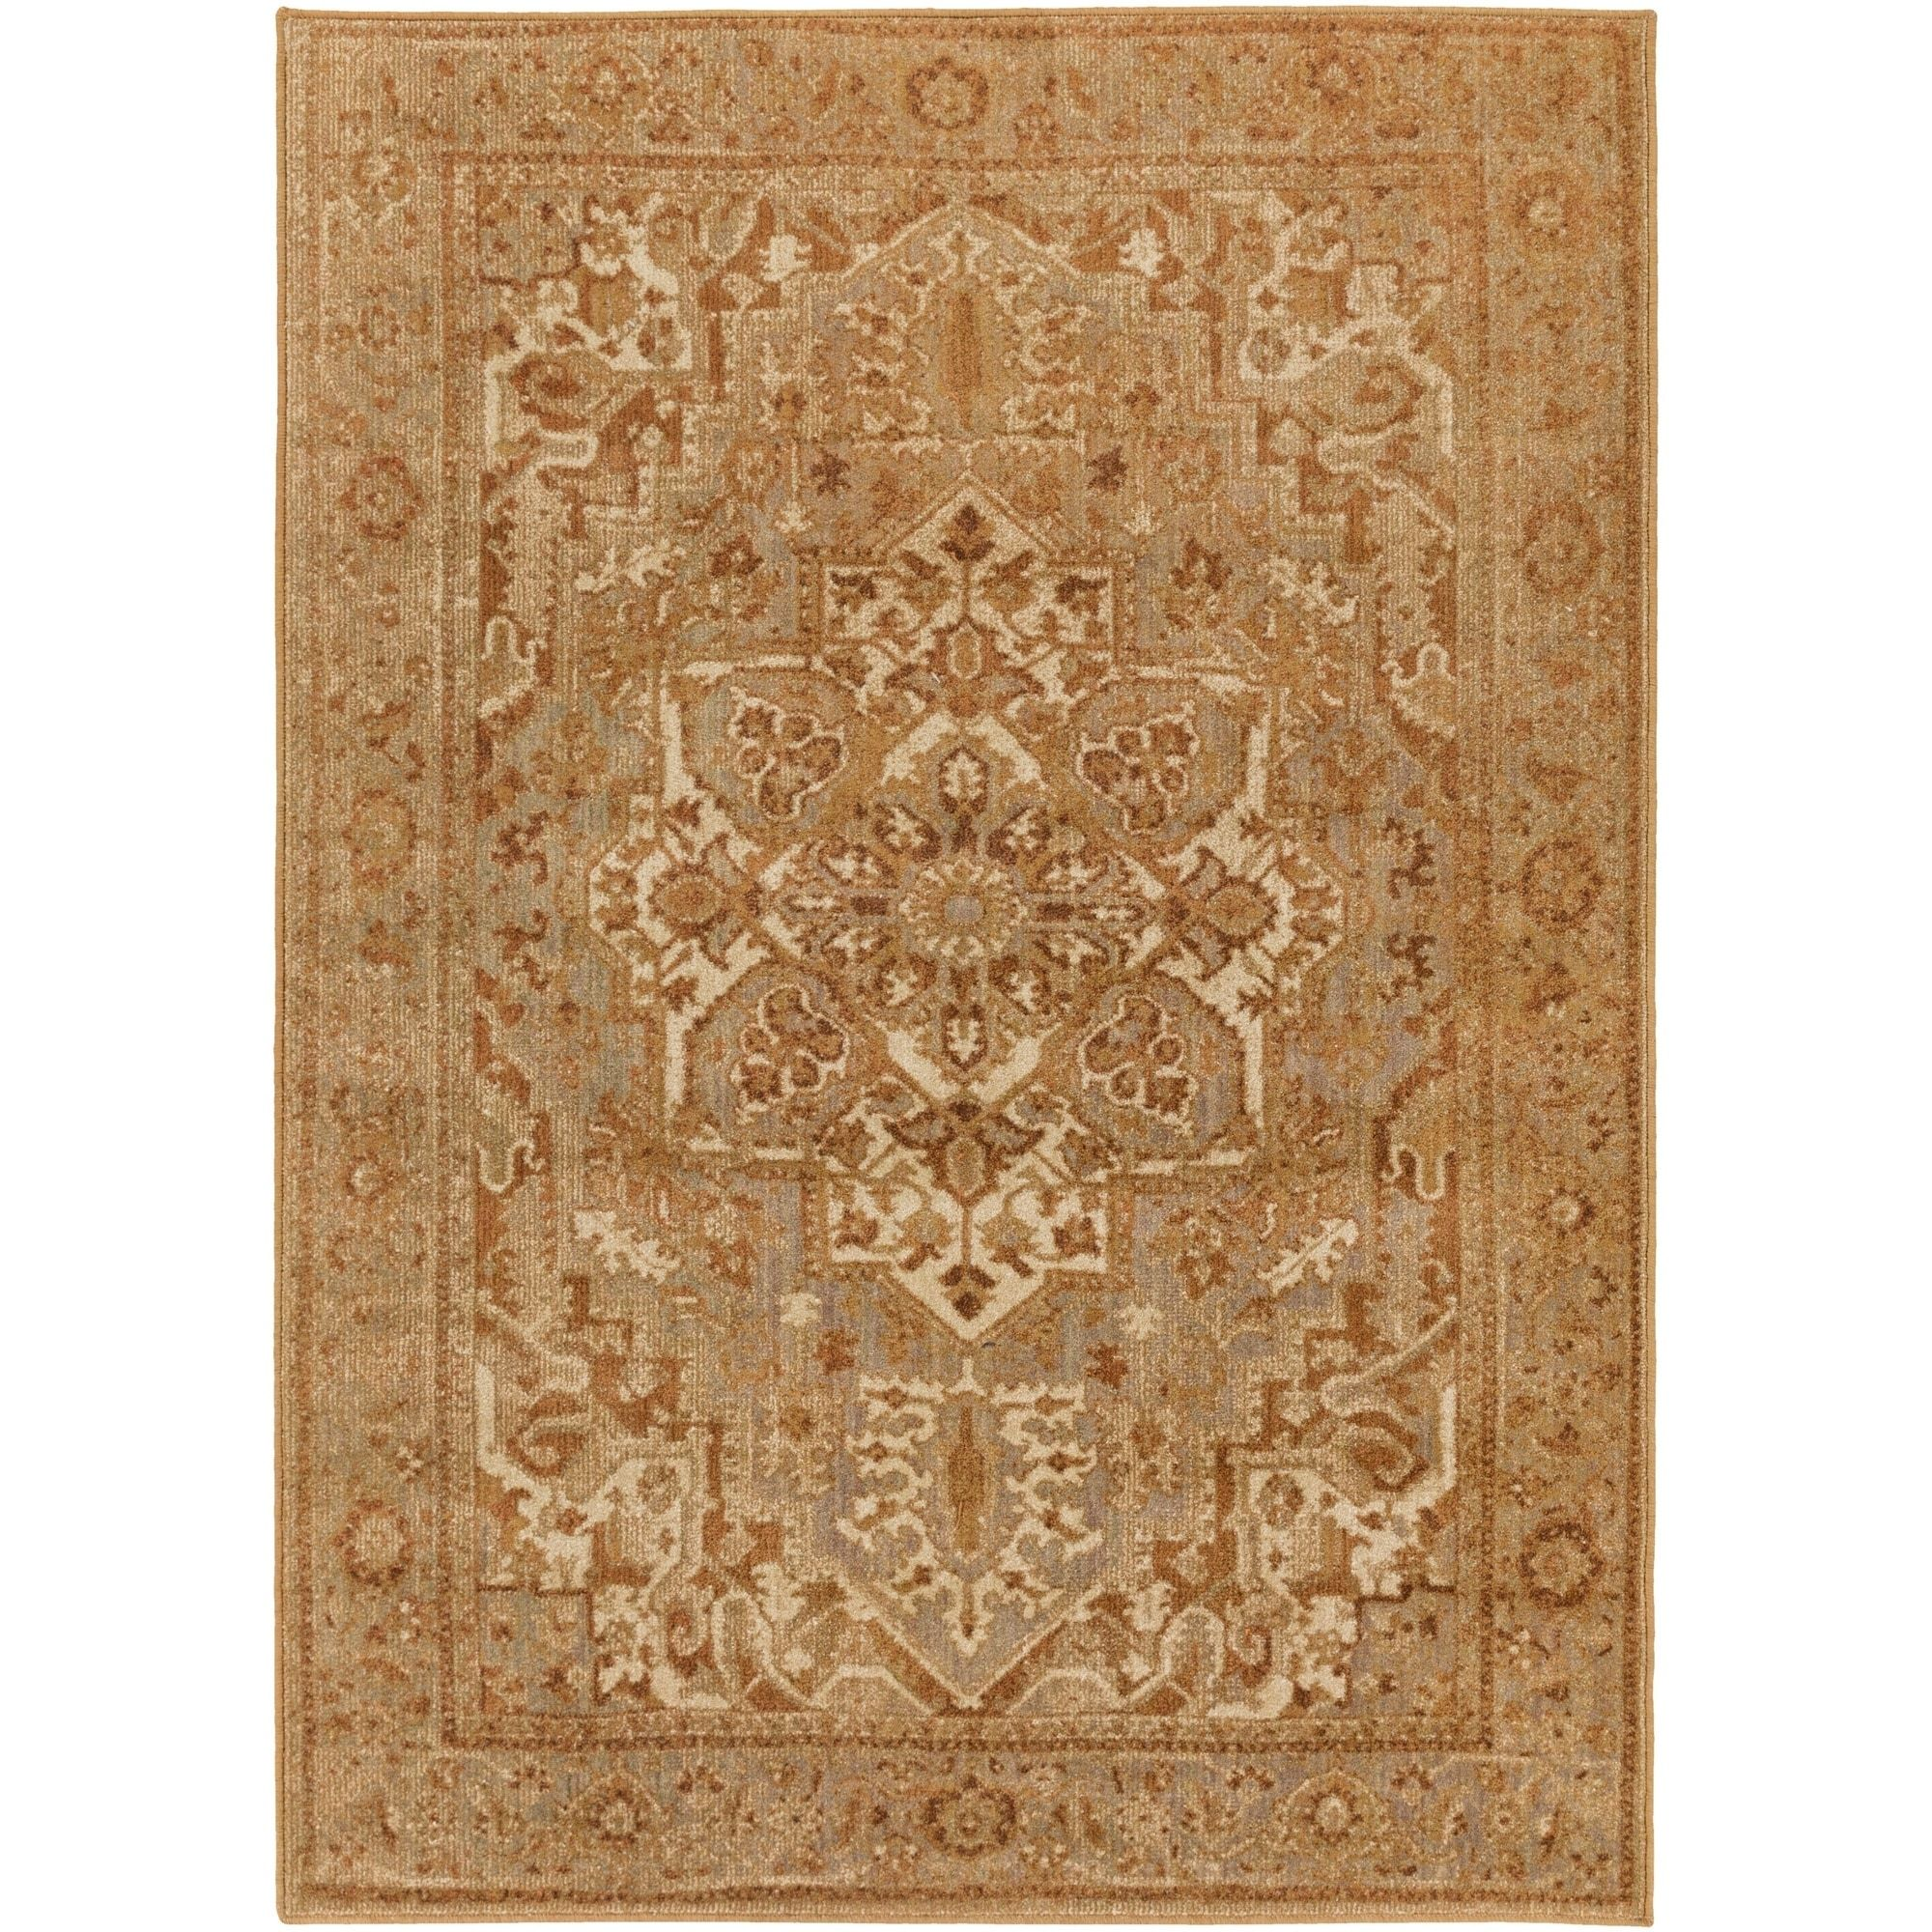 Burbank Area Rug 6 7 X 9 6 Orange Products In 2018 Rugs